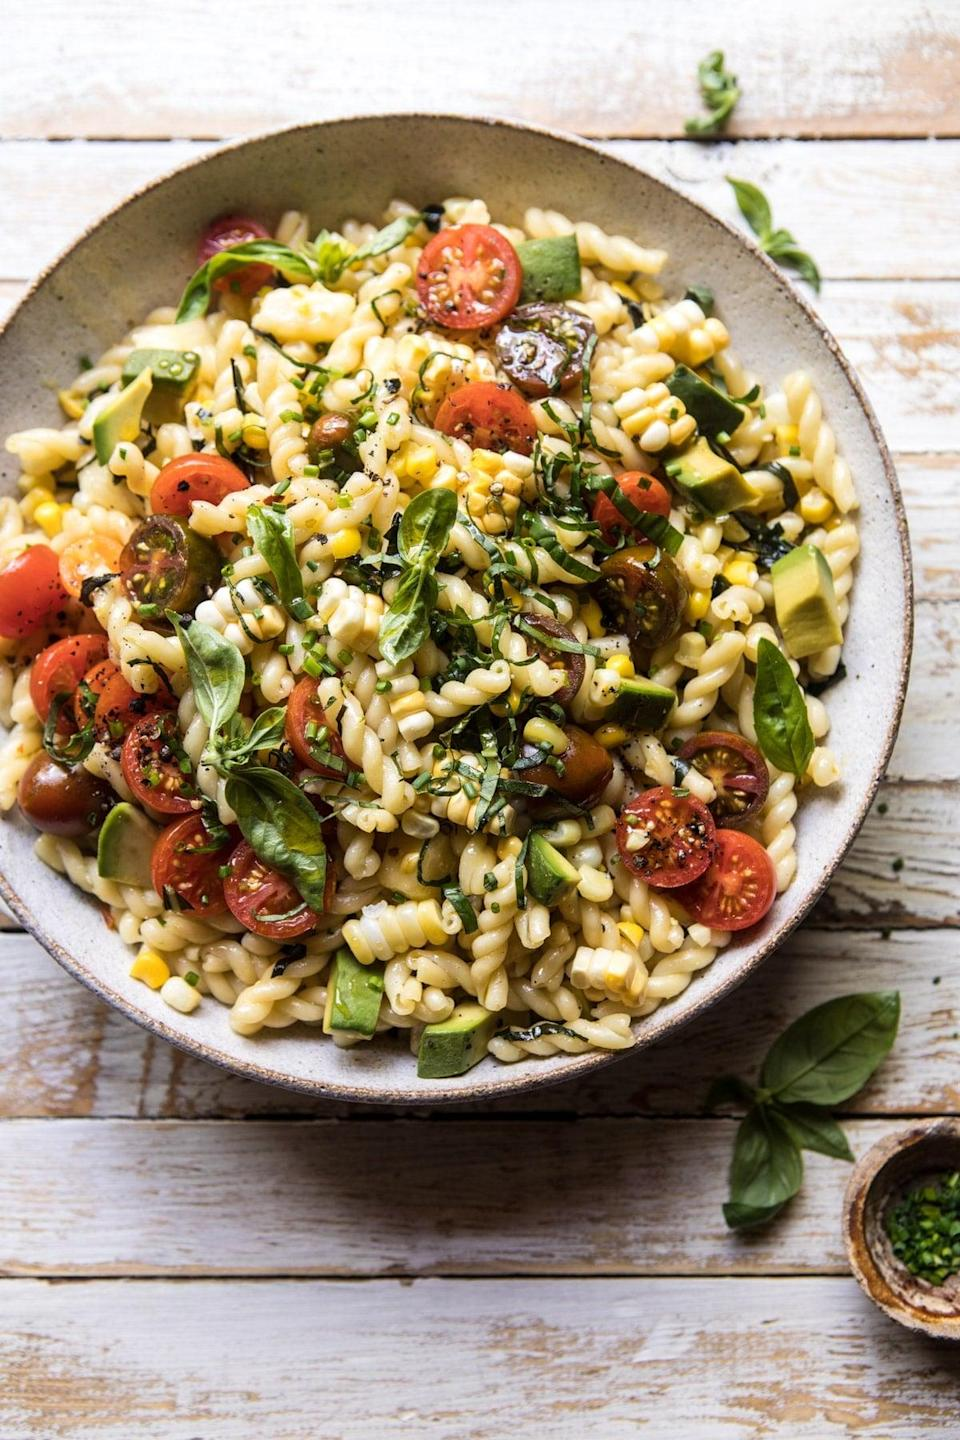 """<p>Need something both healthy and filling? Throw together this pasta salad which features a hint of cheddar cheese that gives it an extra kick. We suggest adding extra corn if you're a fan of the veggie because it adds a ton of flavor.</p> <p><strong>Get the recipe:</strong> <a href=""""http://www.halfbakedharvest.com/corn-tomato-and-avocado-pasta-salad/"""" class=""""link rapid-noclick-resp"""" rel=""""nofollow noopener"""" target=""""_blank"""" data-ylk=""""slk:corn, tomato, and avocado pasta salad"""">corn, tomato, and avocado pasta salad</a></p>"""